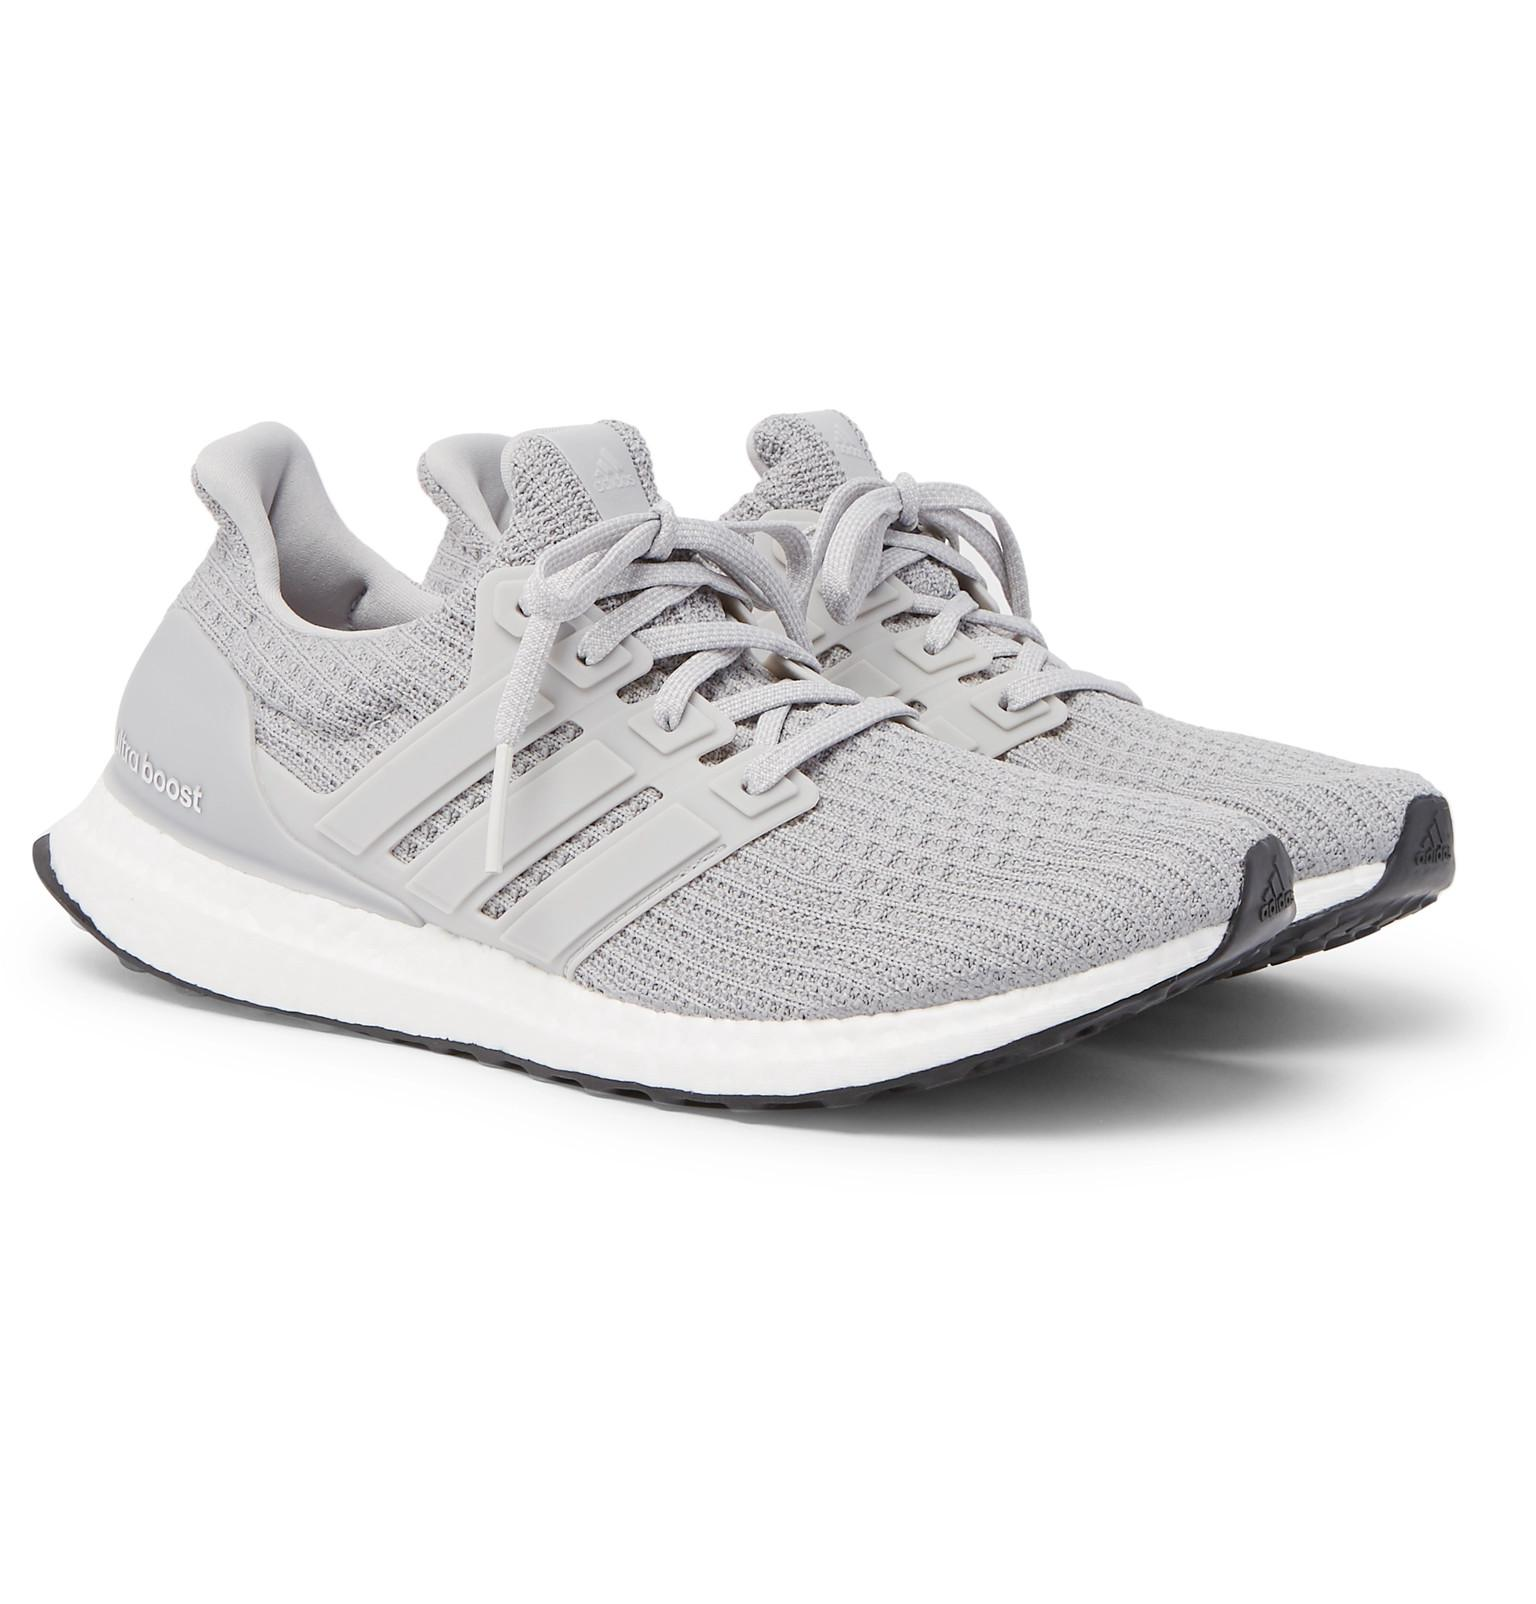 Ultraboost Gray Rubber Originals Trimmed Primeknit Sneakers Adidas wY68qHH